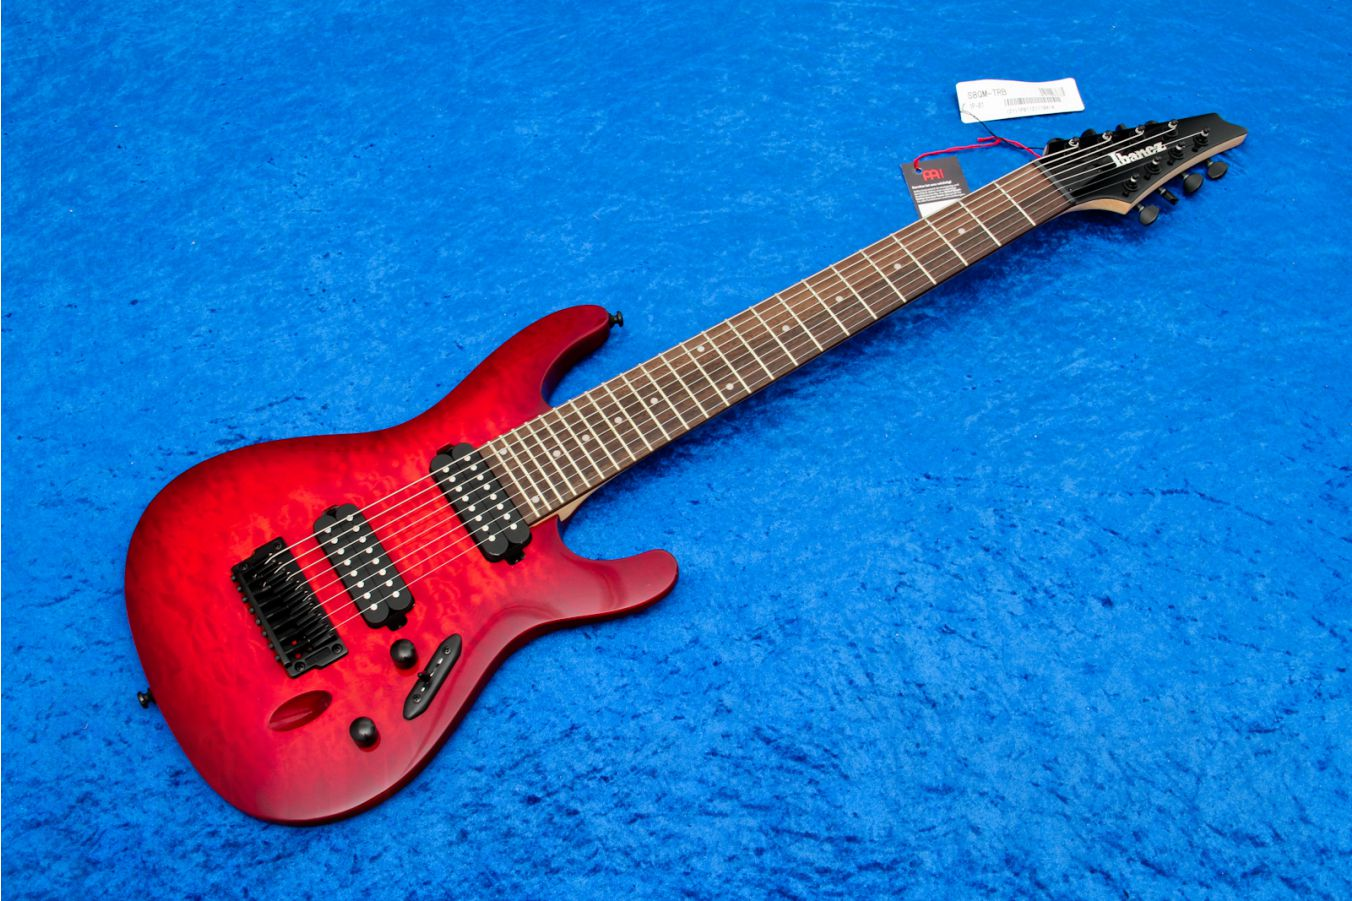 Ibanez S8QM TRB - Transparent Red Burst - b-stock (1x opened box)